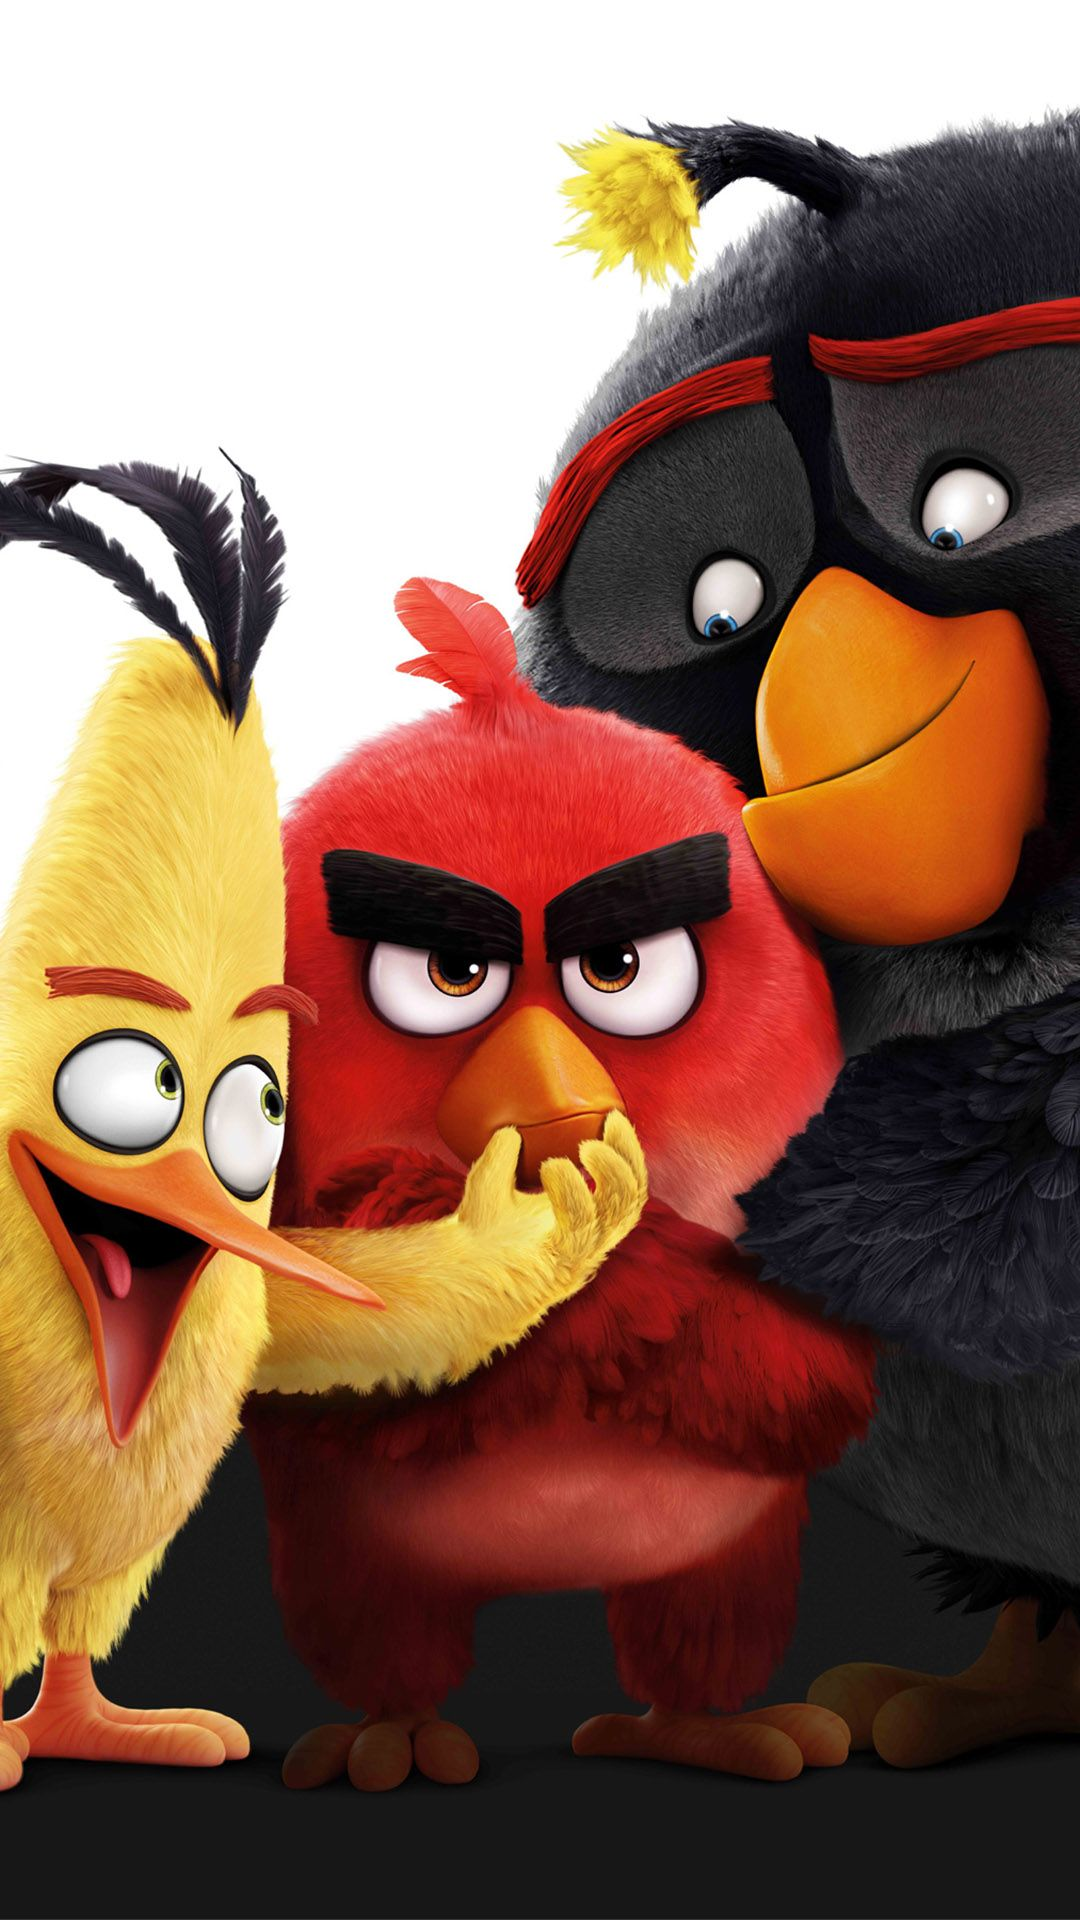 Angry Birds Mobile HD Wallpaper in 2020 Cute cartoon